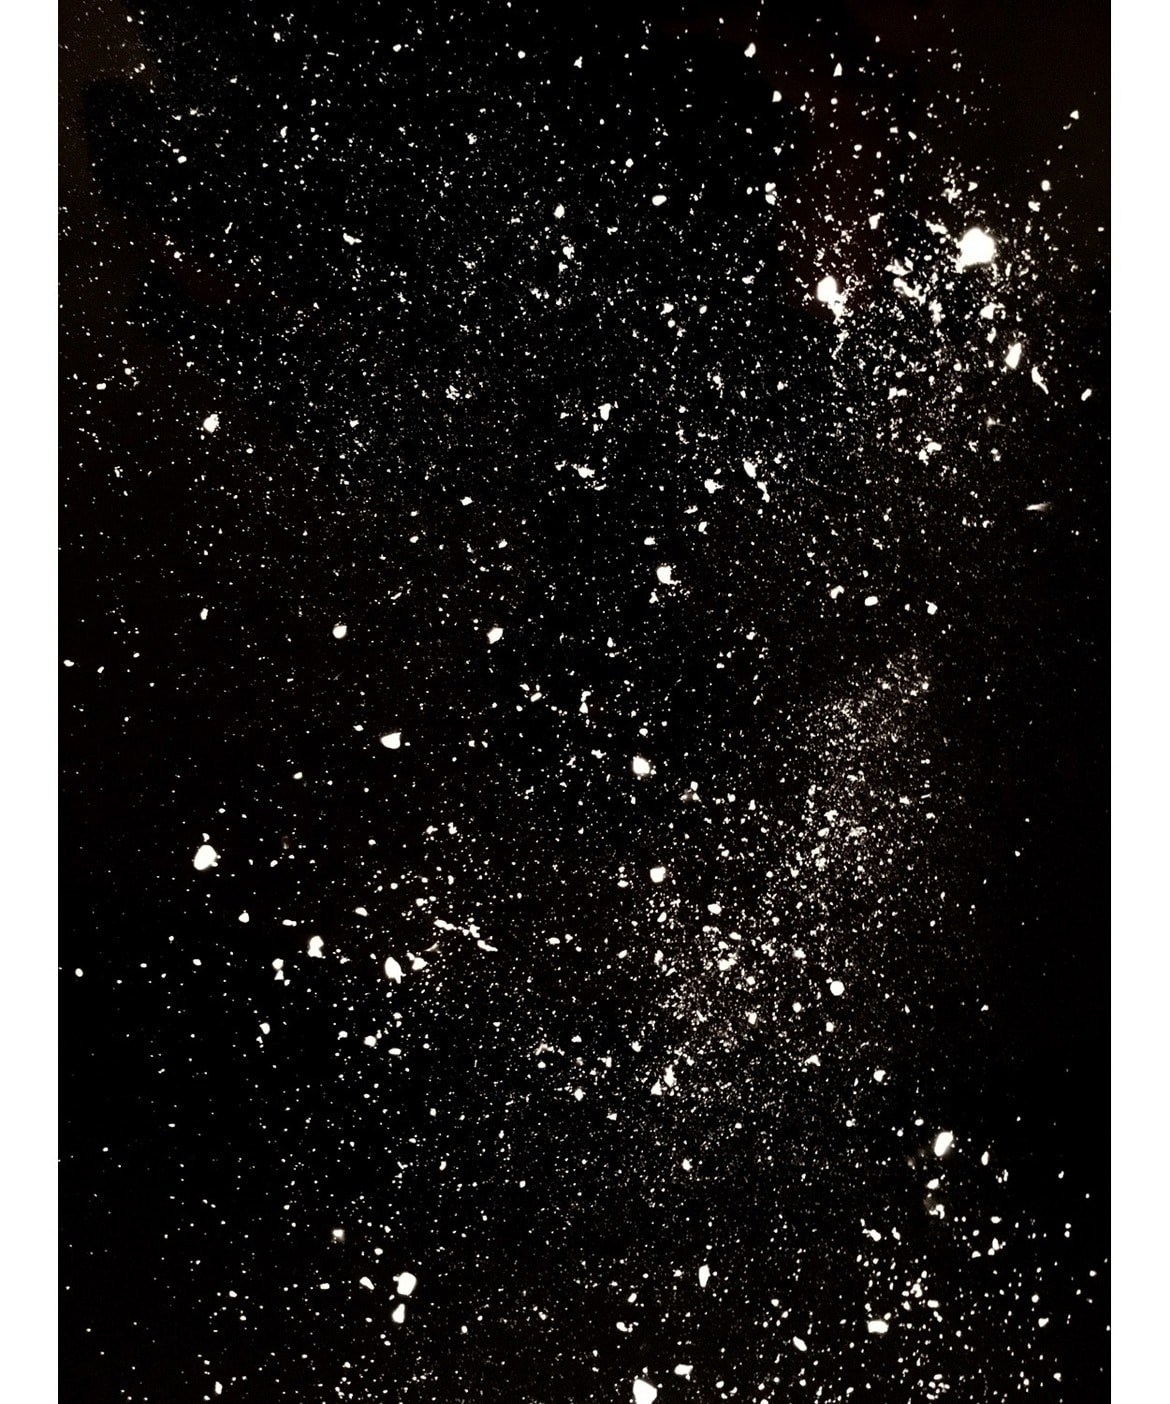 Sara Morawetz, 'The Stars Themselves II' from the series 'Our Sun is Somebody Else's Star', 2017, unique silver gelatin print, 28 x 36 cm framed.